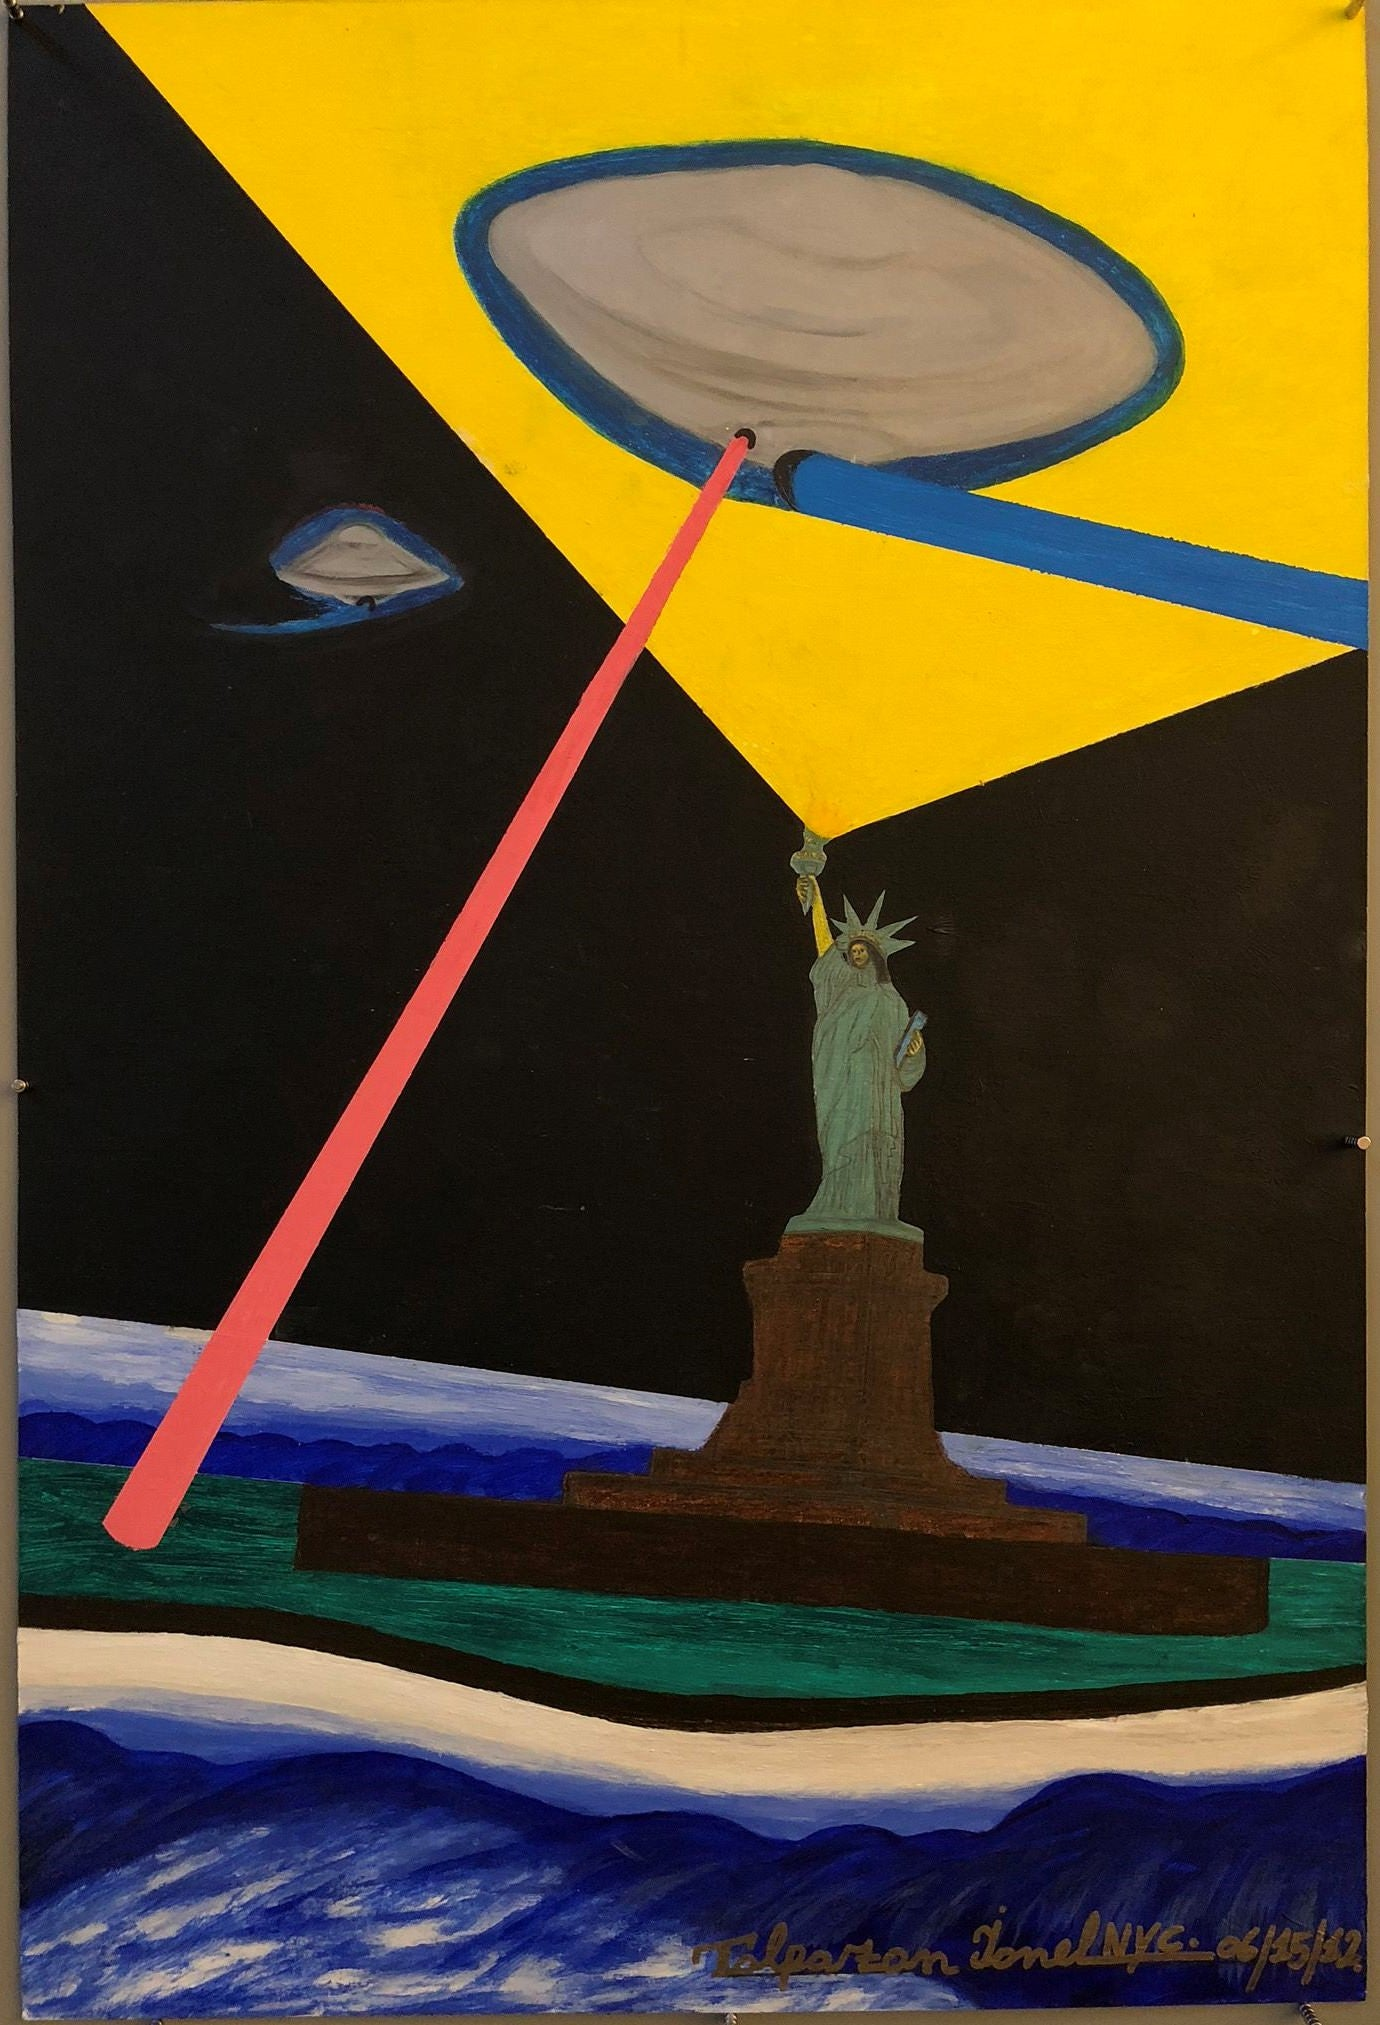 Ionel Talpazan - UFO flying over Statue of Liberty at Night